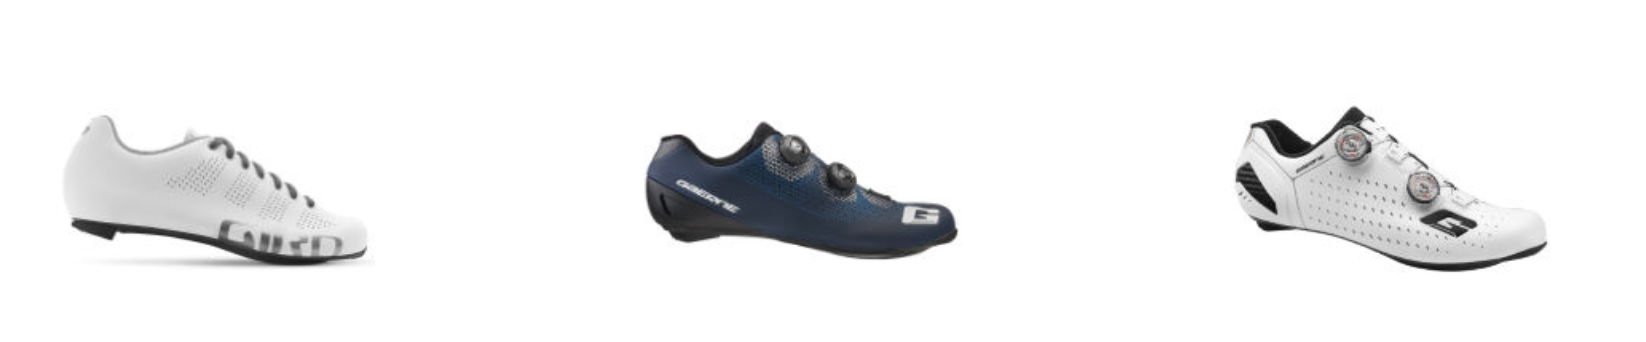 Up to 50% off select cycle footwear